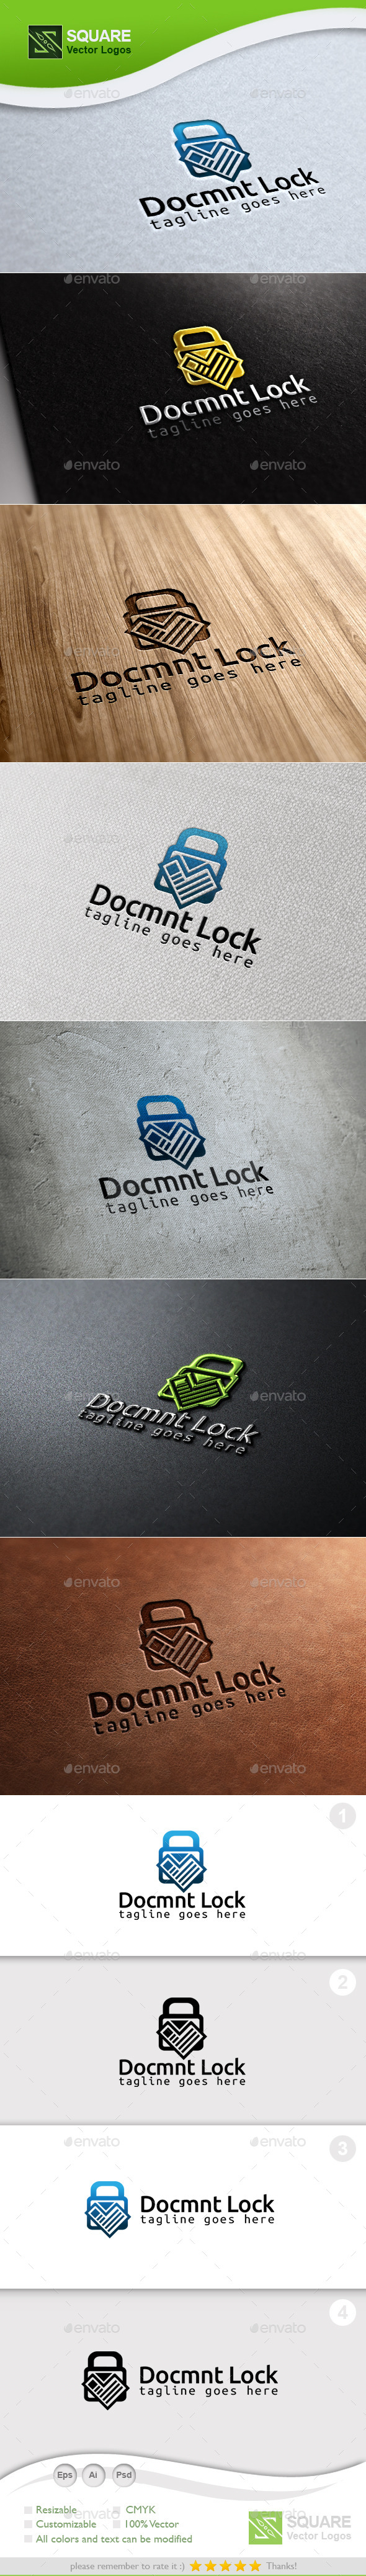 Document Locker Custom Logo Template - Symbols Logo Templates